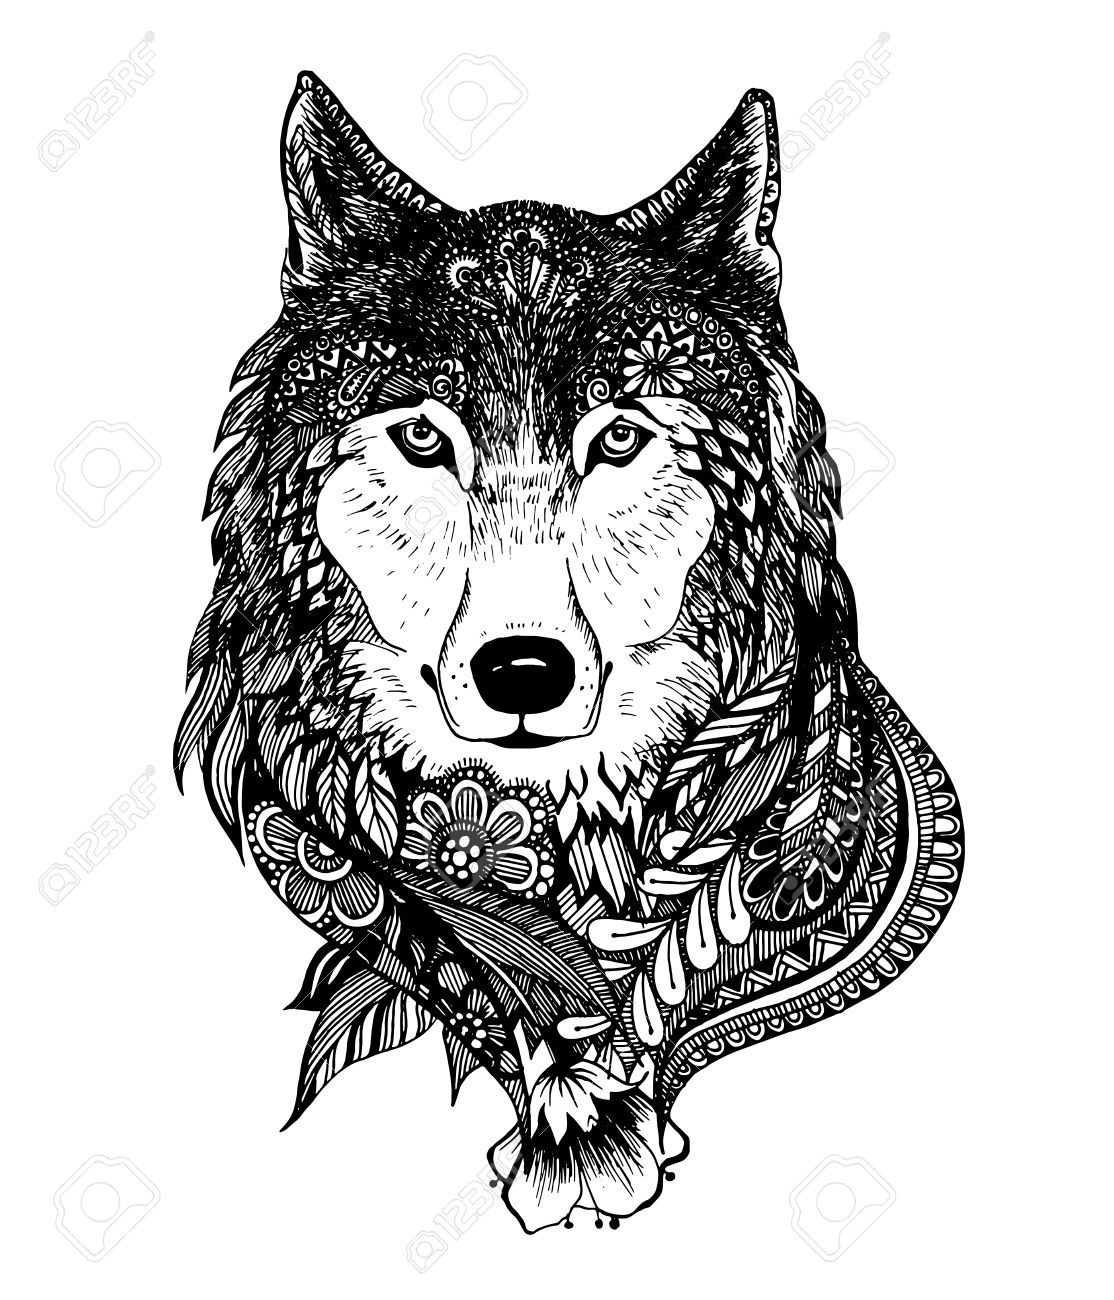 Abstract Hand Drawing With Elements Of Ornaments Wolf Graphic